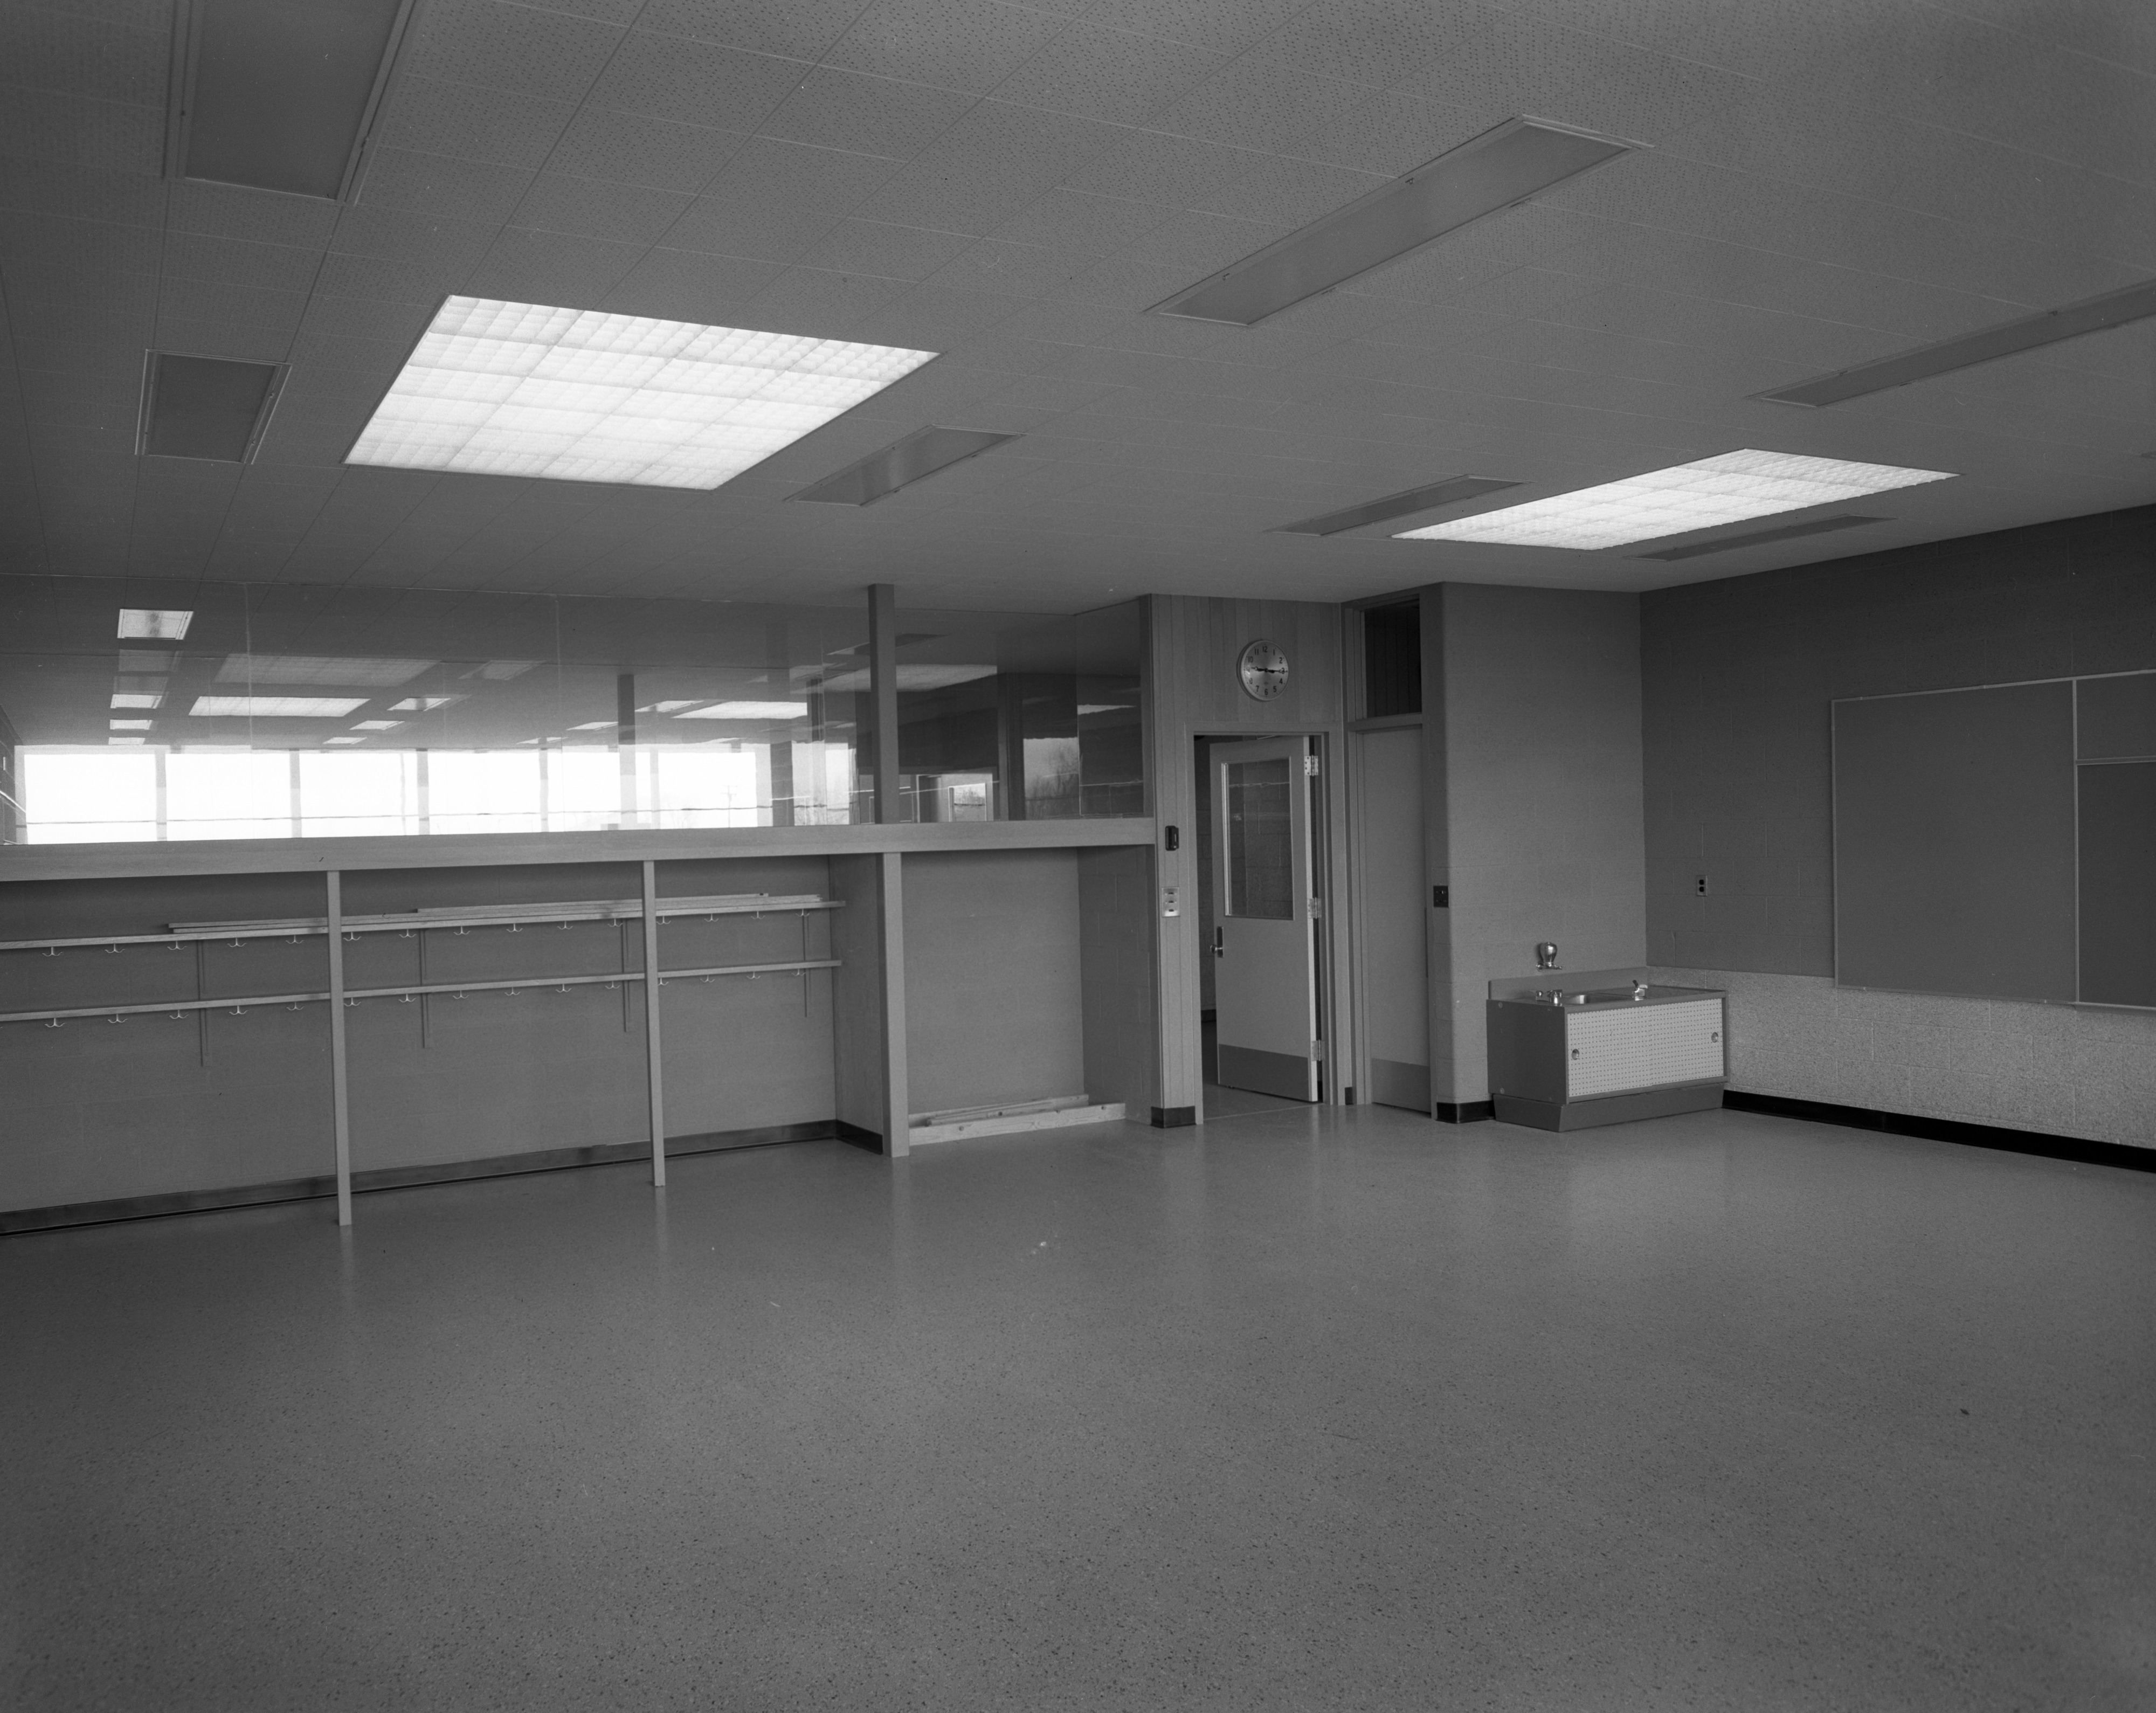 Classroom In New Wines Elementary School On Newport Road, April 1957 image